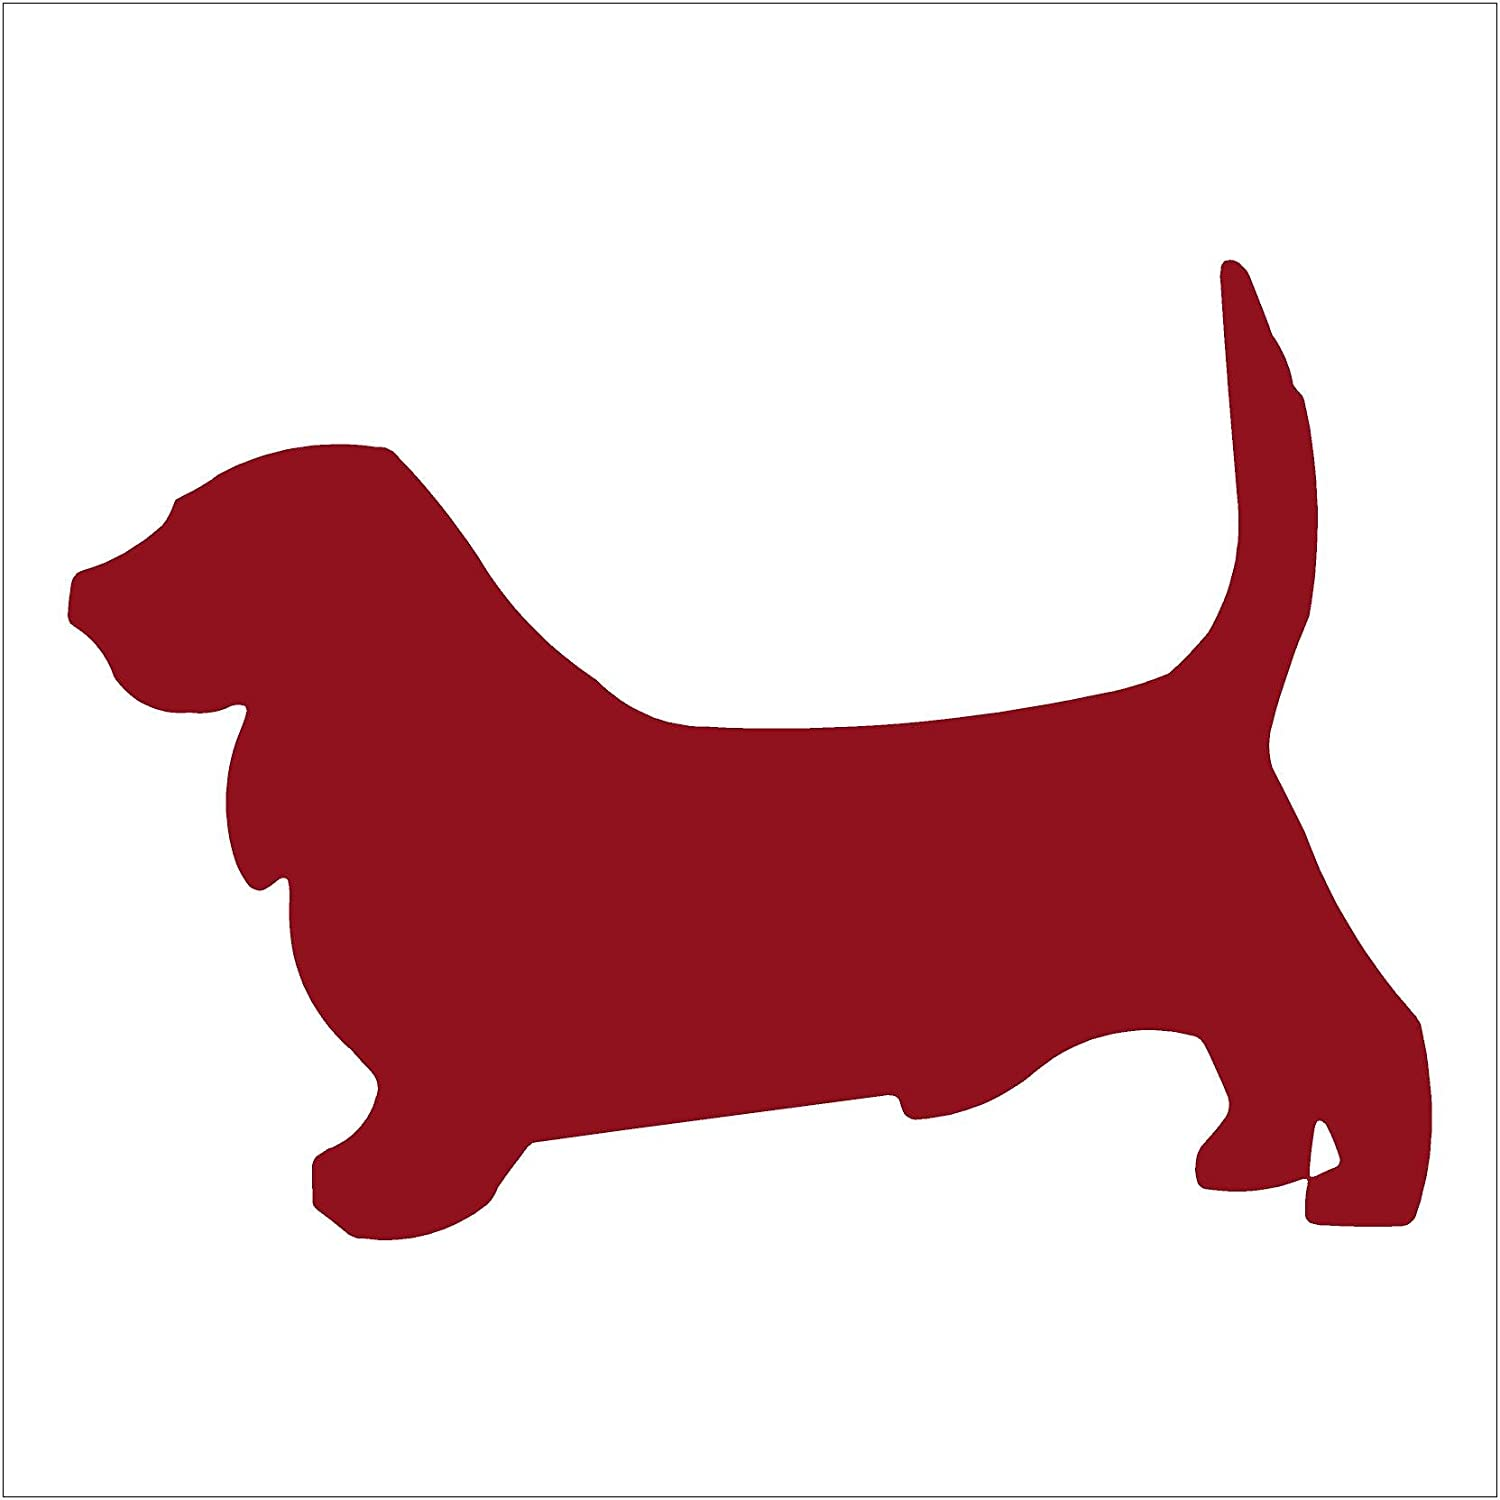 Amazon.com: BASSET HOUND - Dog - Vinyl Car Decal Sticker #1489 ...